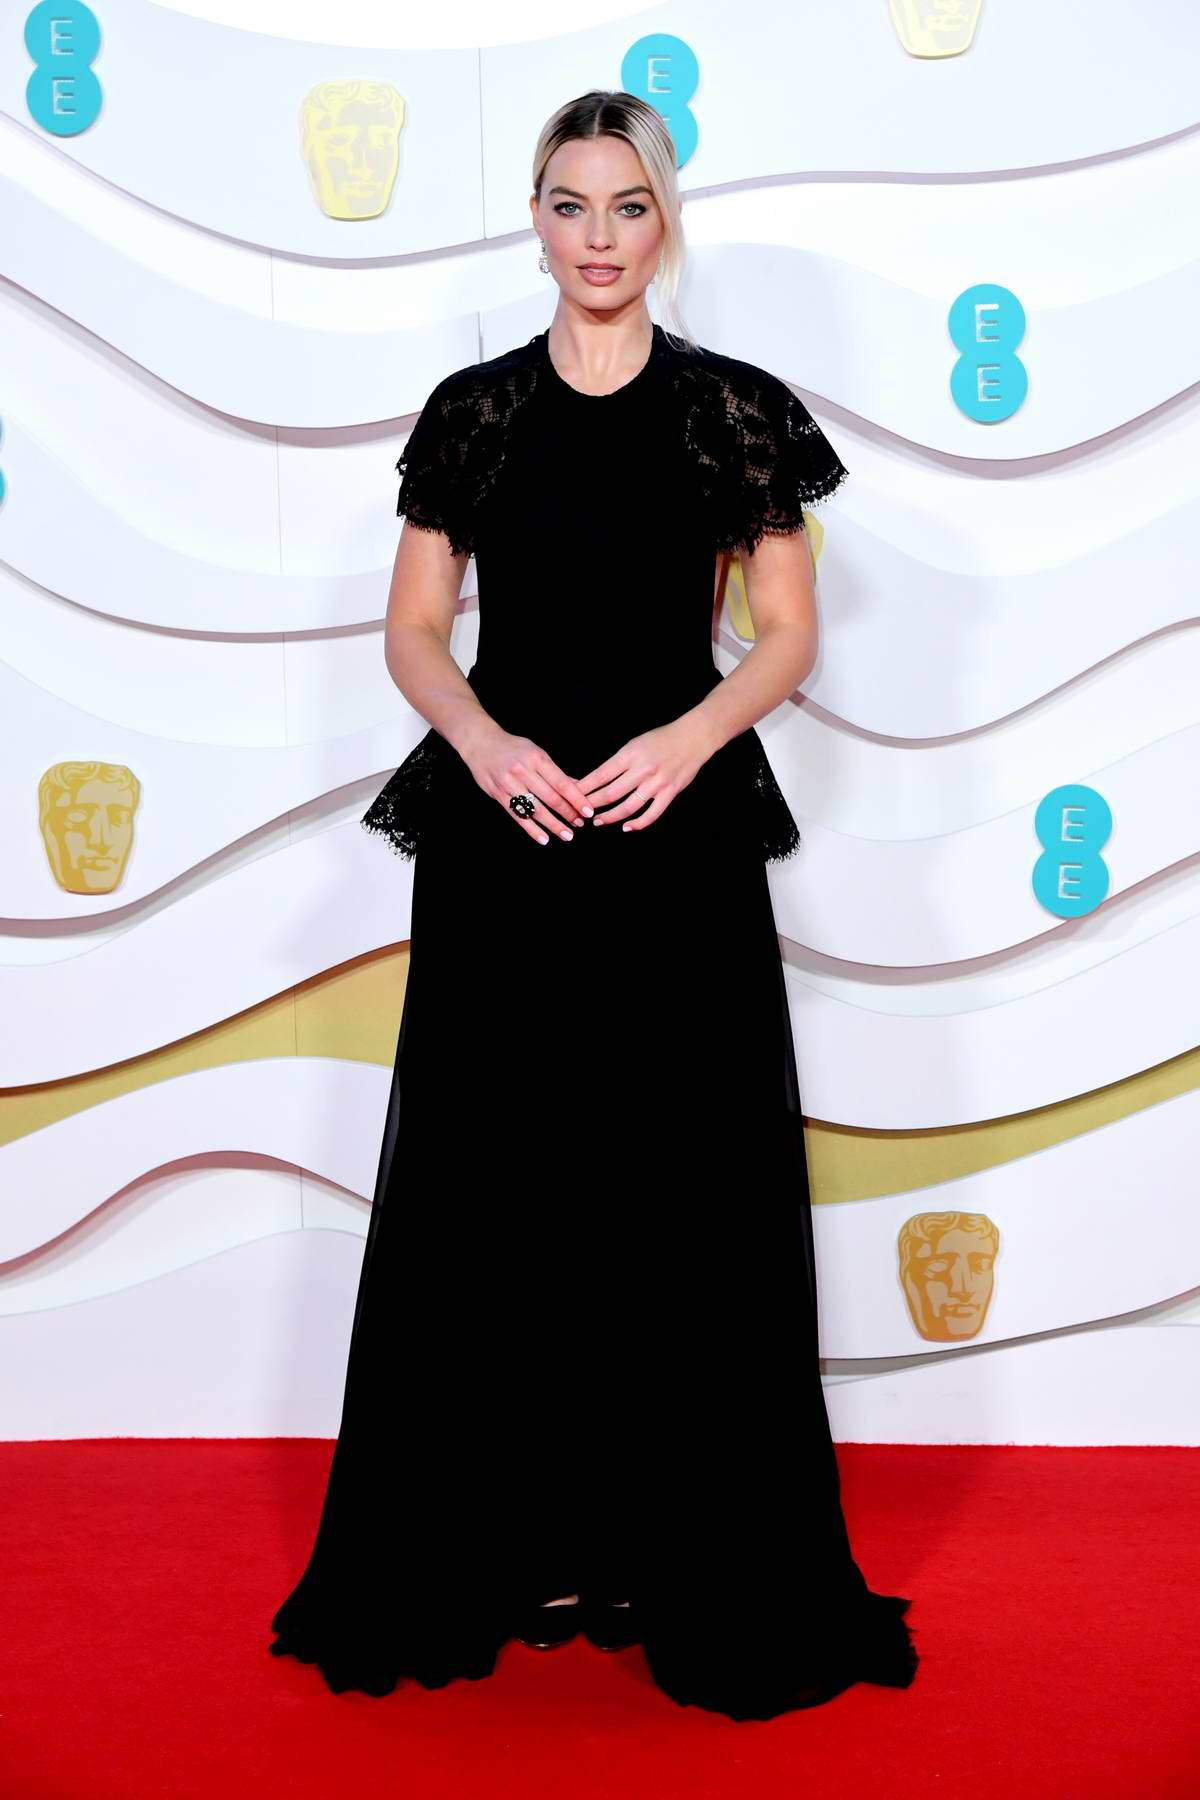 Margot Robbie attends the 73rd EE British Academy Film Awards at Royal Albert Hall in London, UK